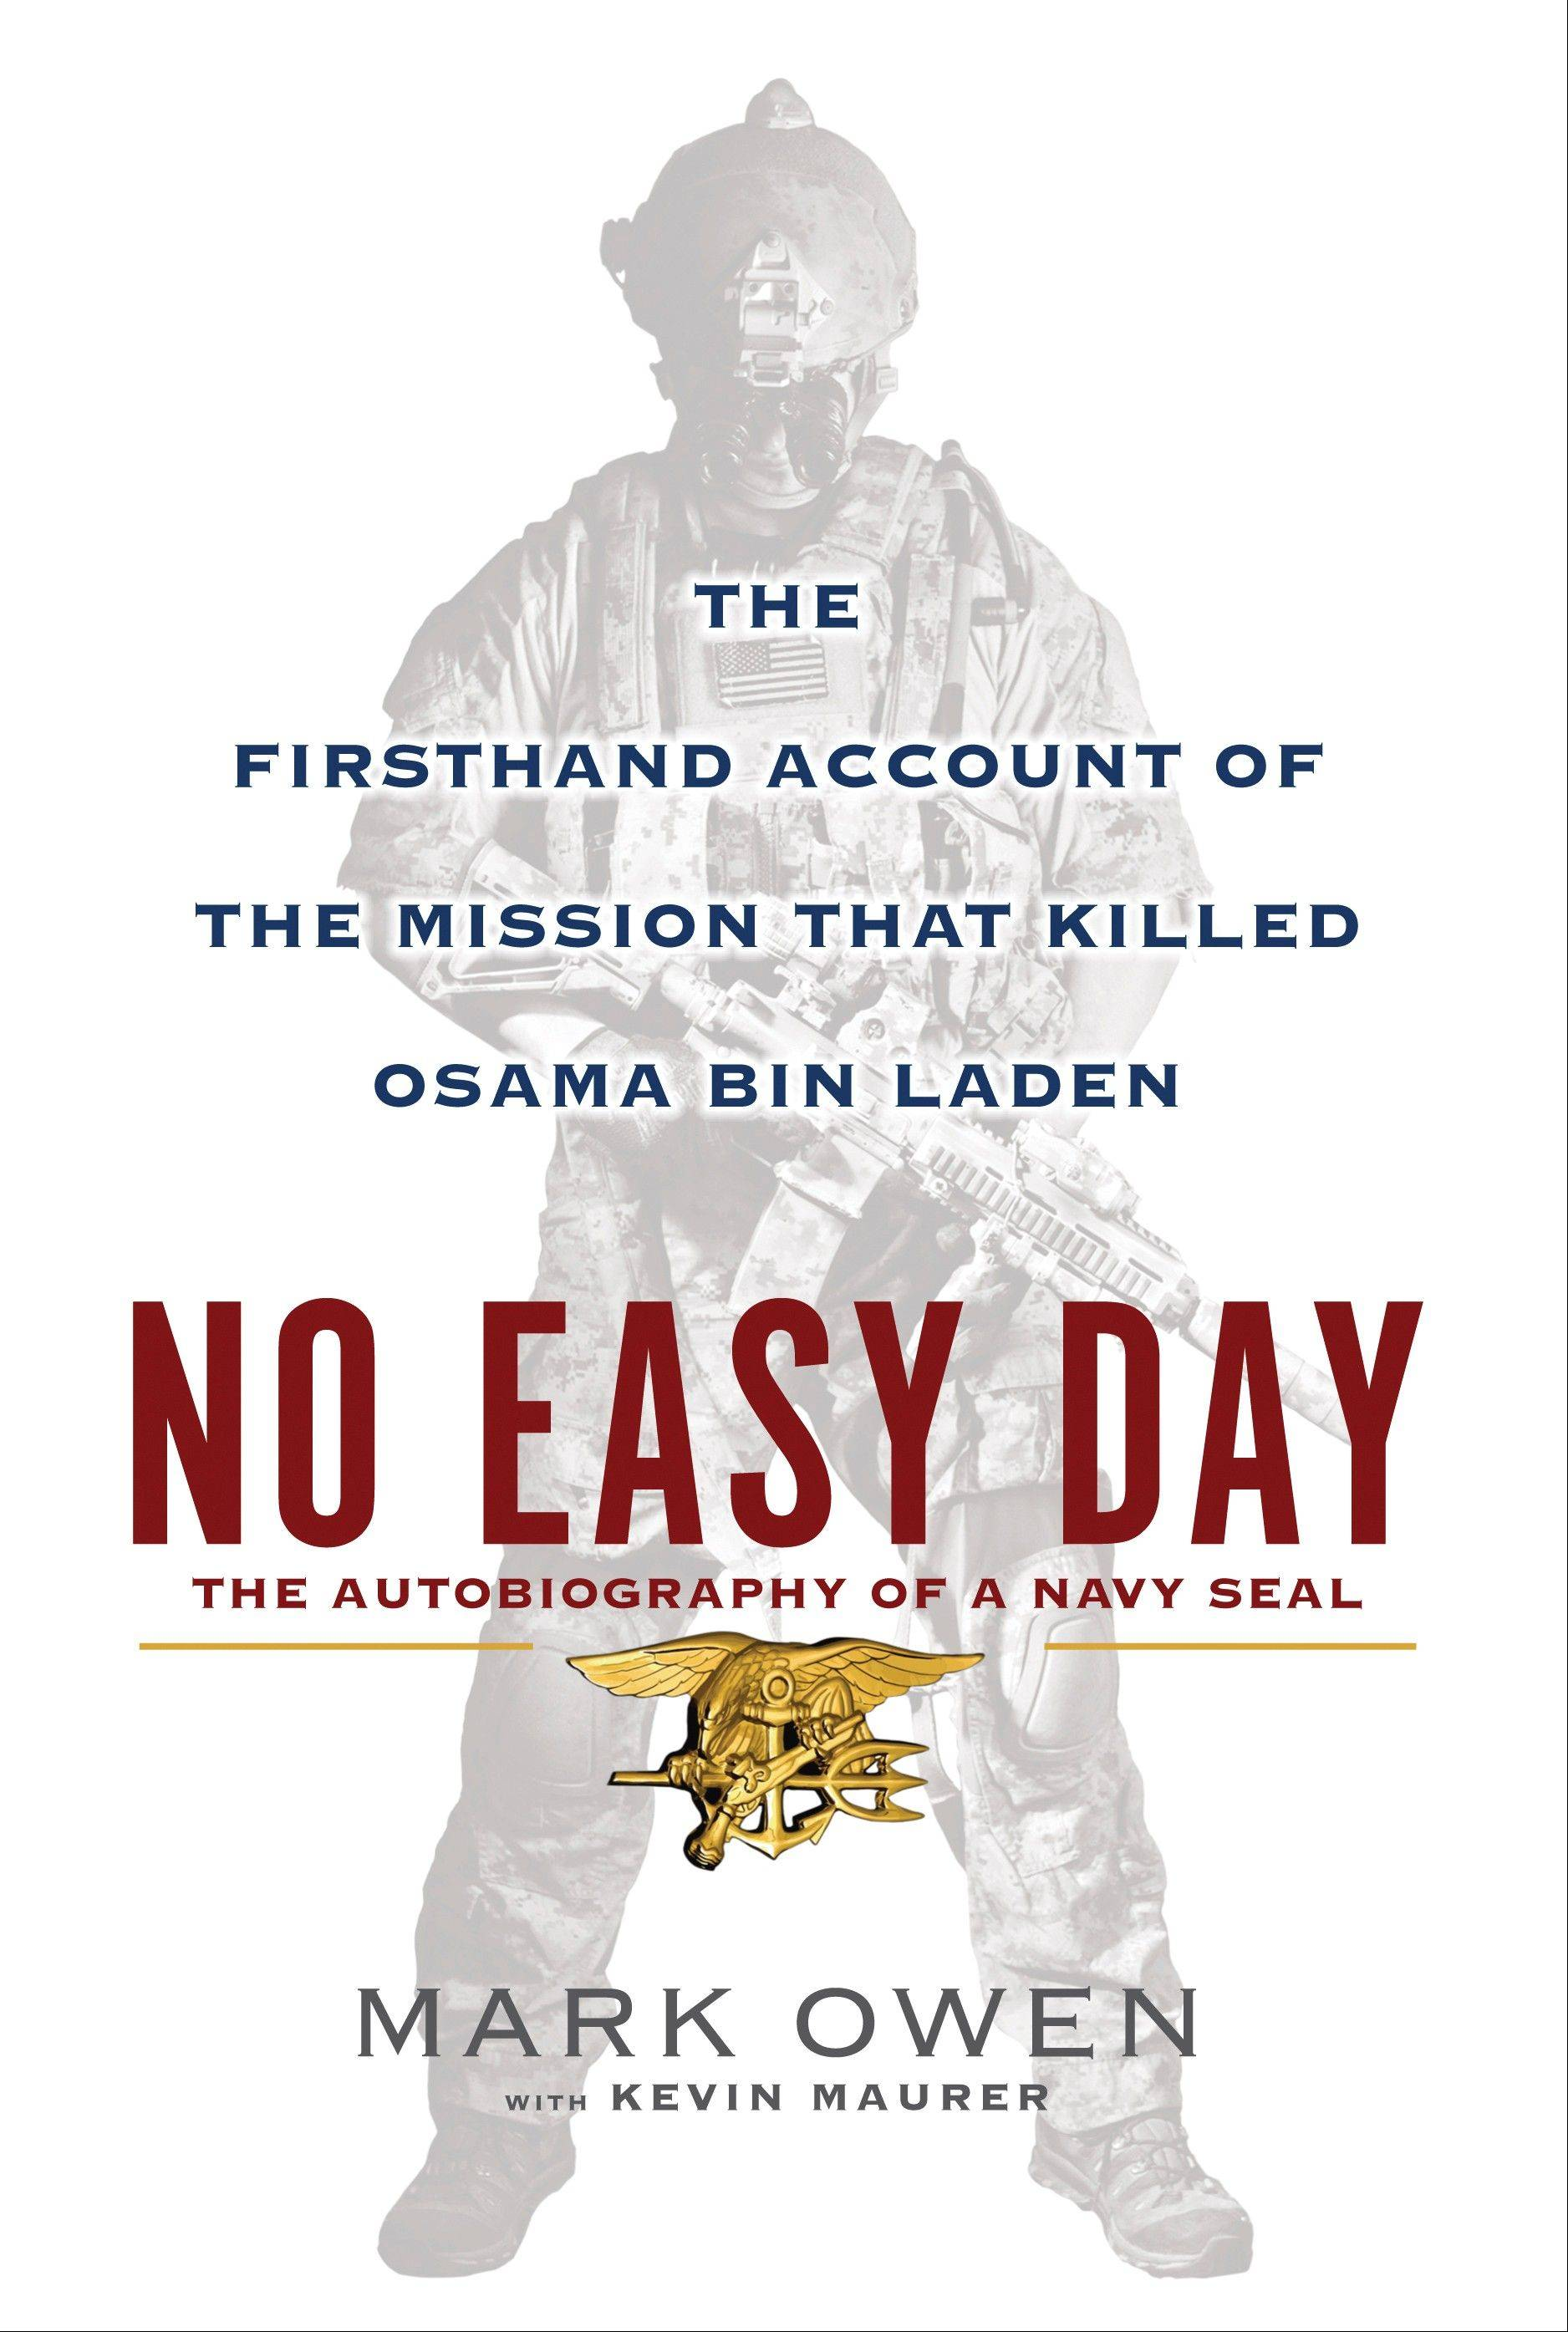 Associated Press �No Easy Day: The Firsthand Account of the Mission that Killed Osama Bin Laden,� by a former SEAL writing under the pseudonym Mark Owen, with Kevin Maurer, gives a firsthand account of the raid that killed Osama bin Laden.